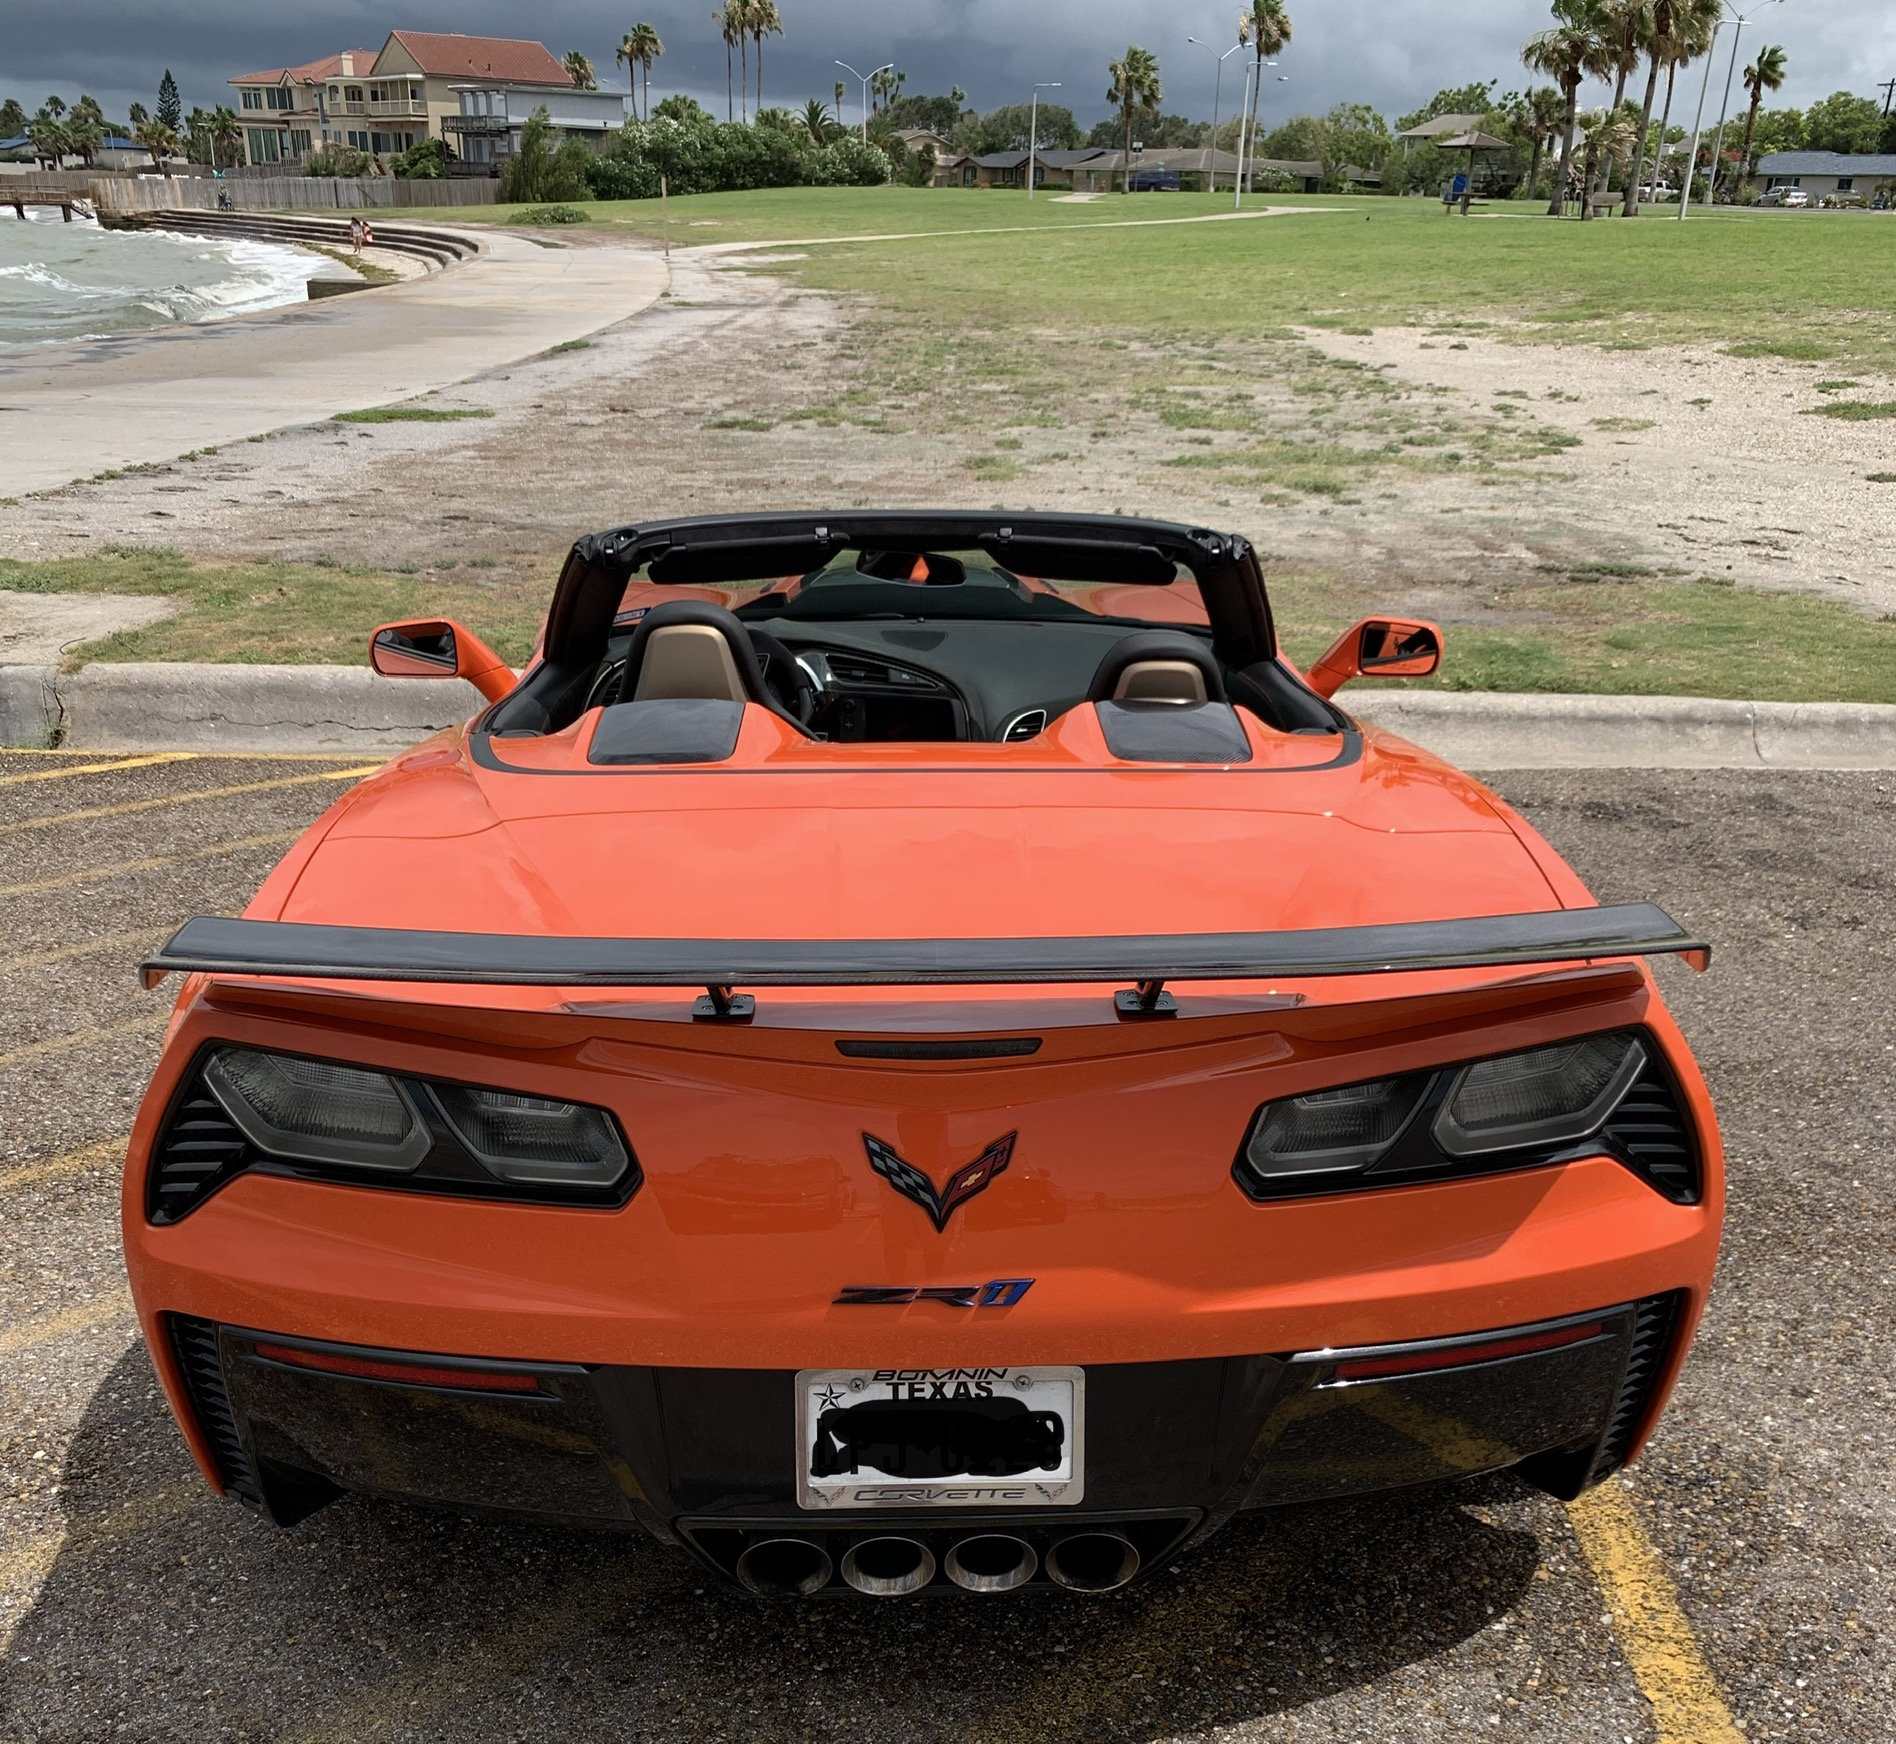 FS (For Sale) 2019 ZR1 Sebring Orange Convertible Fully